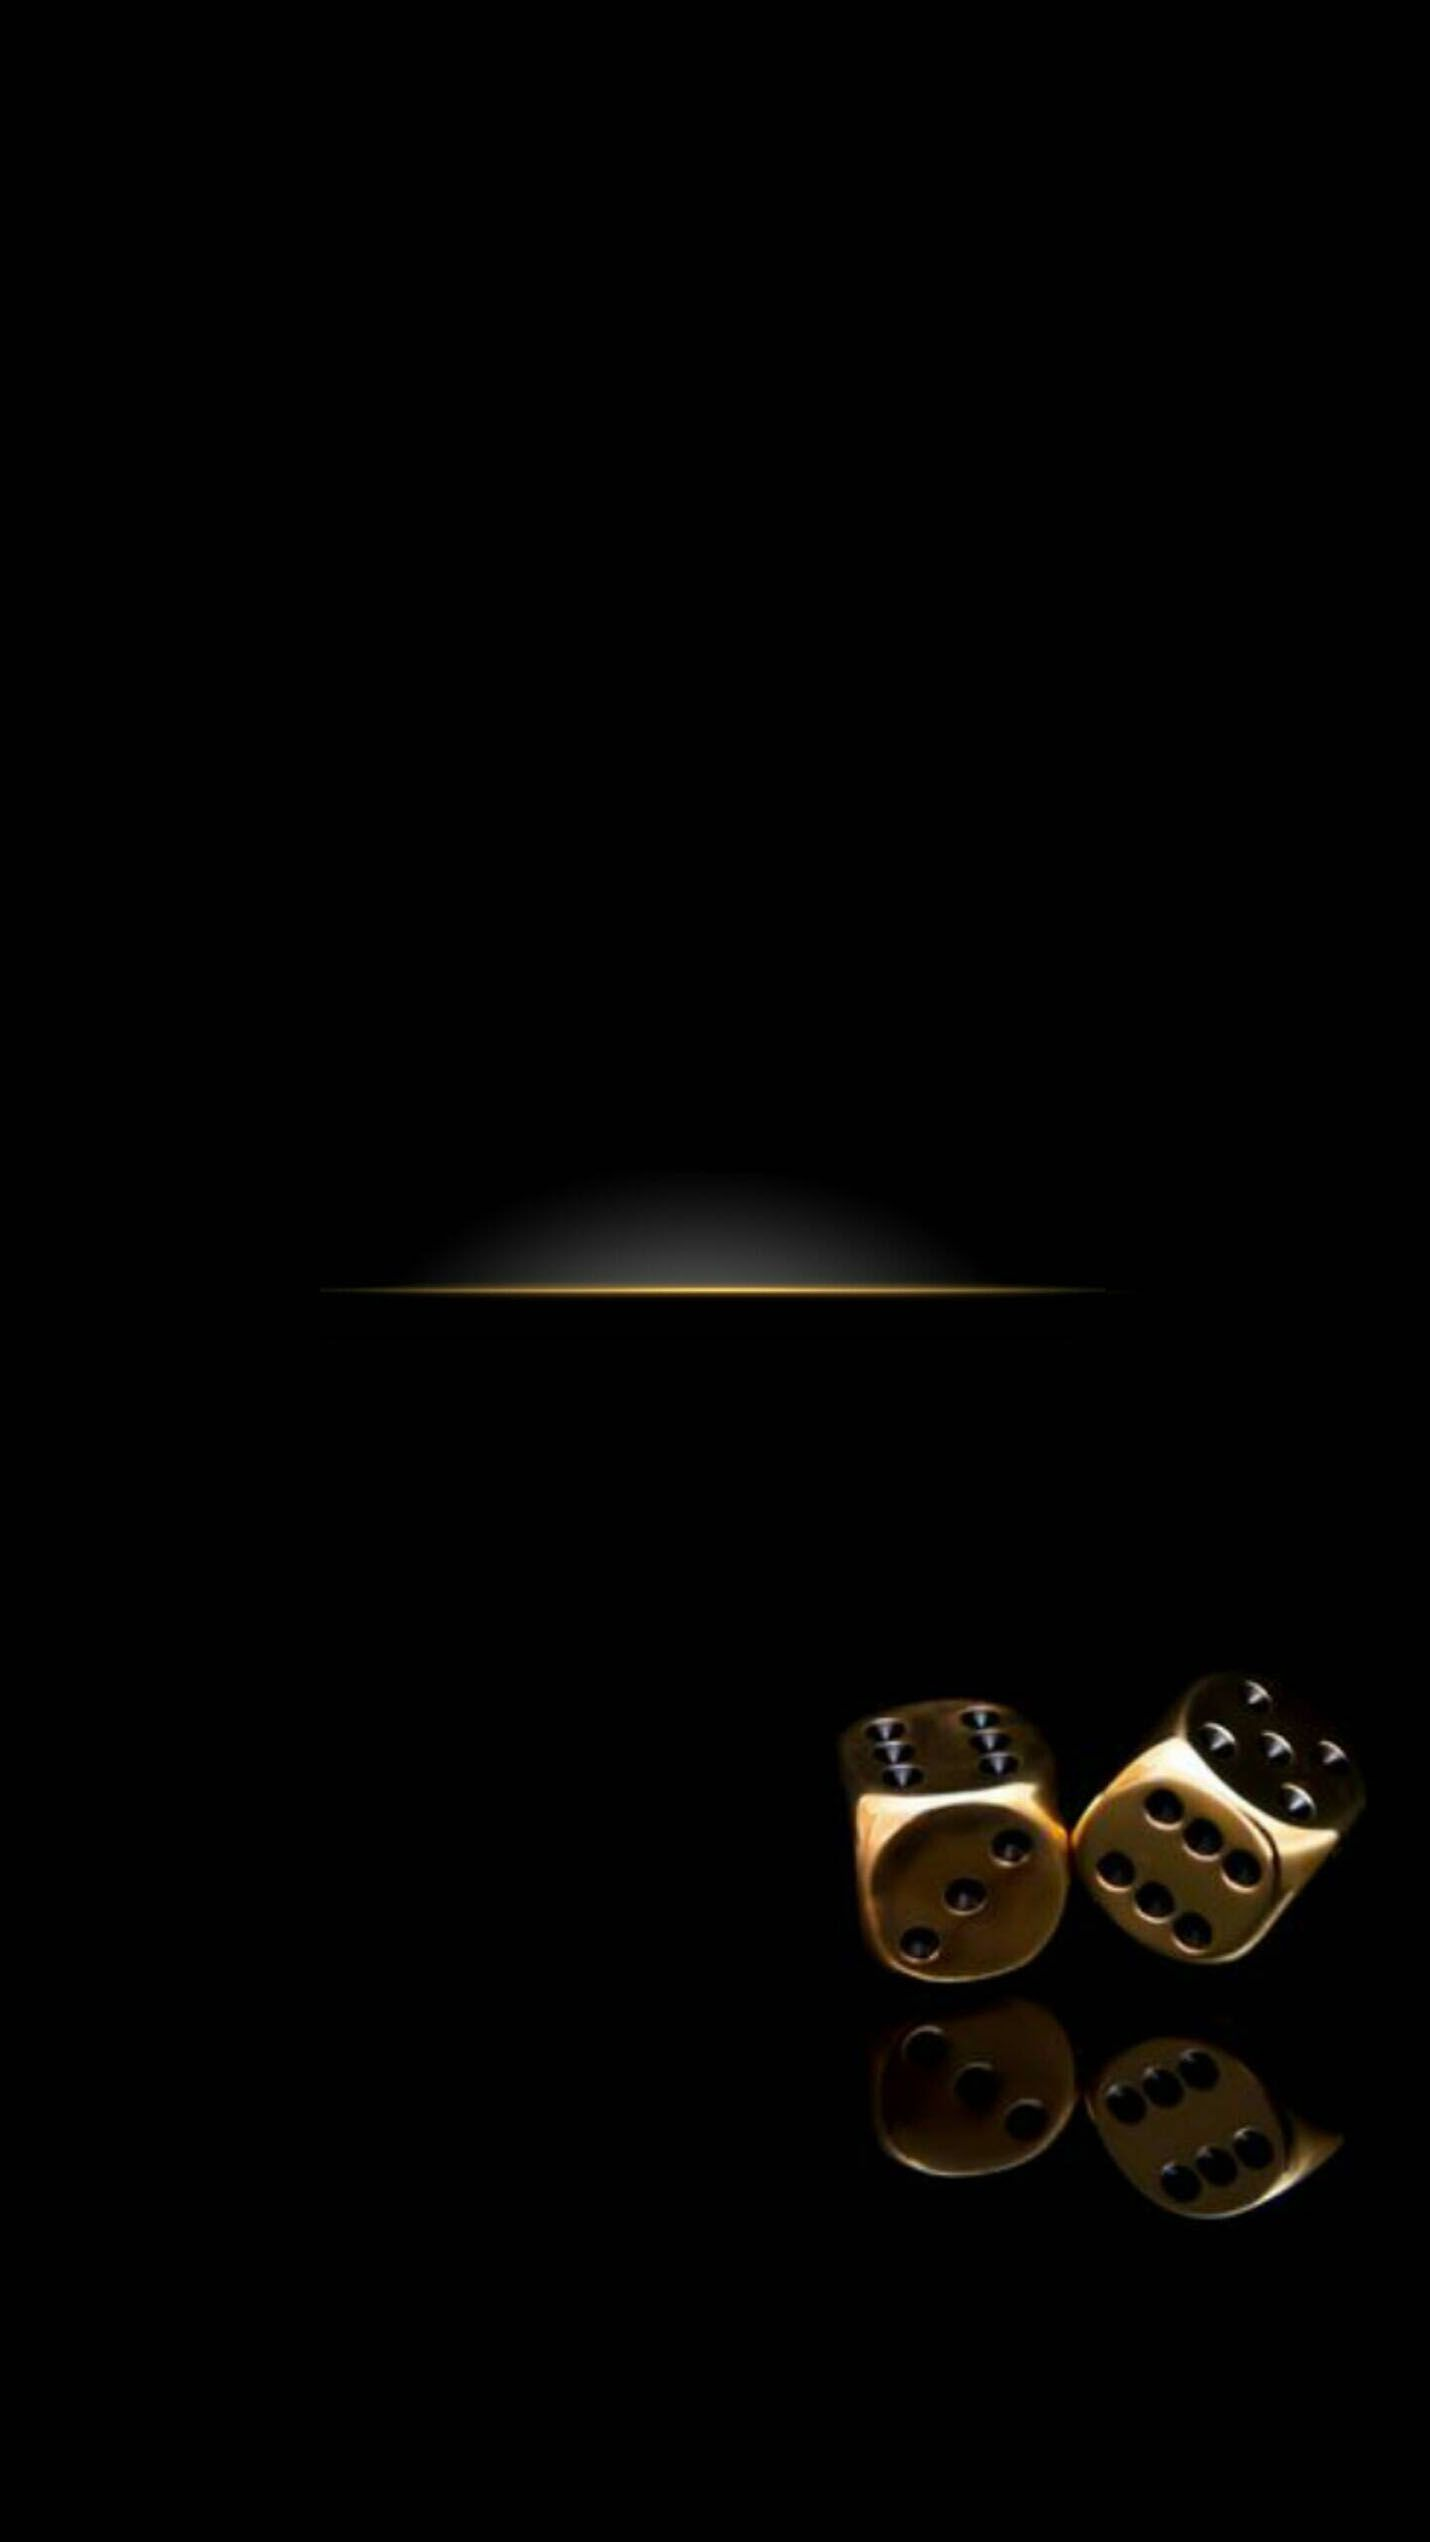 Dark Wallpapers Hd For Android Download